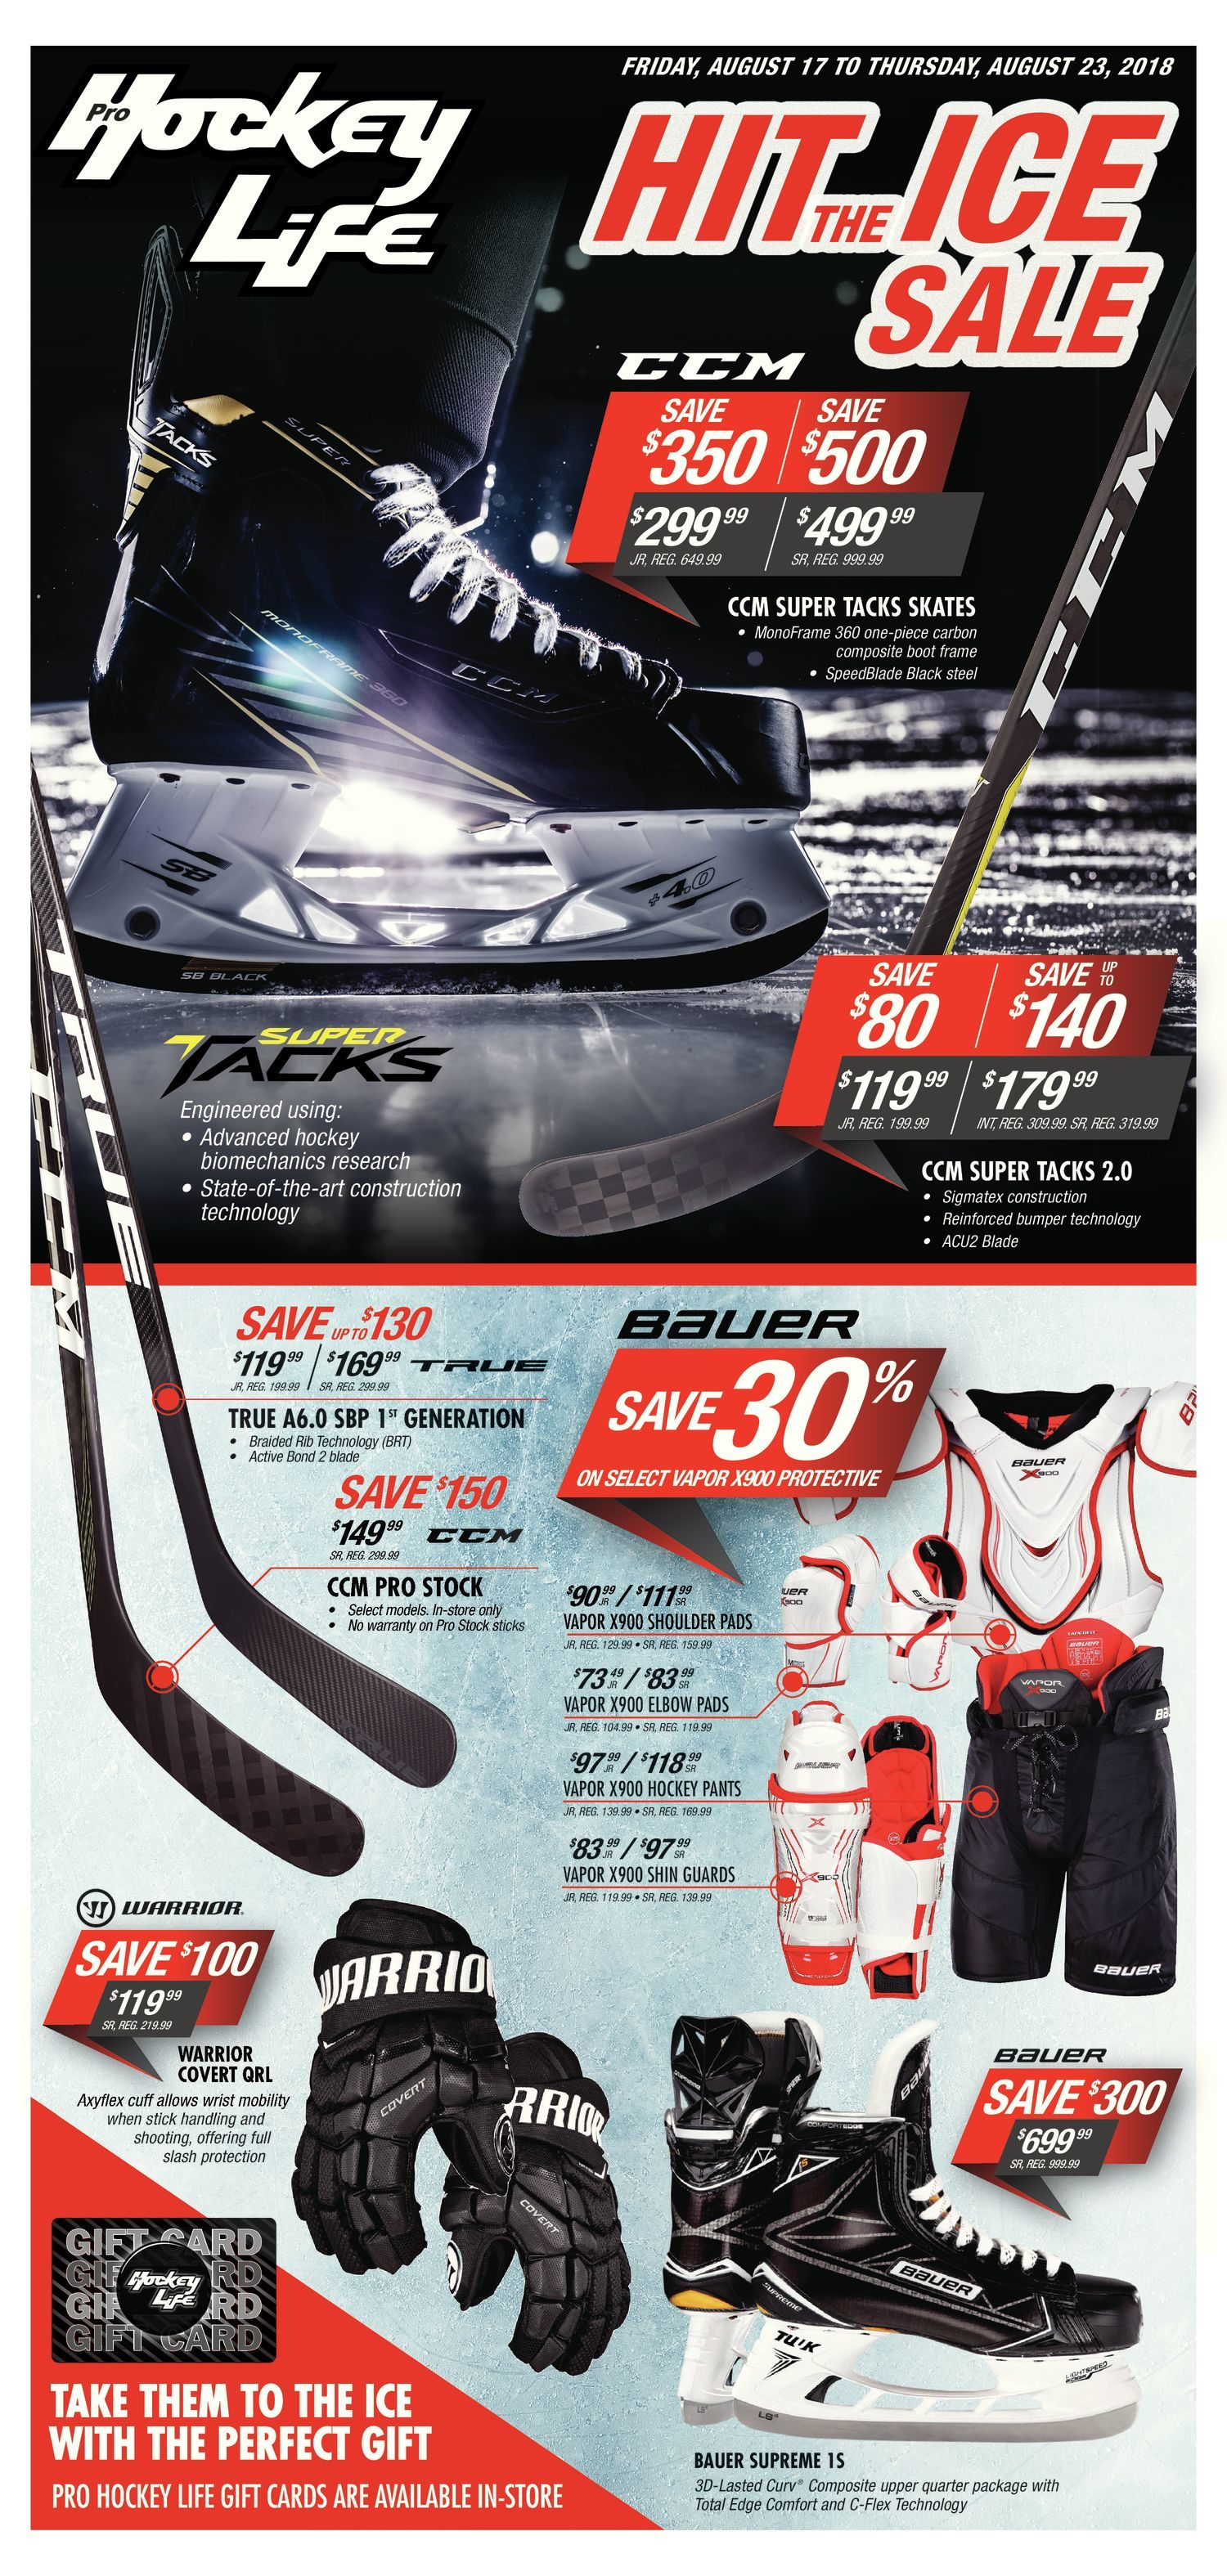 Pro Hockey Life Weekly Flyer - Hit The Ice Sale - Aug 17